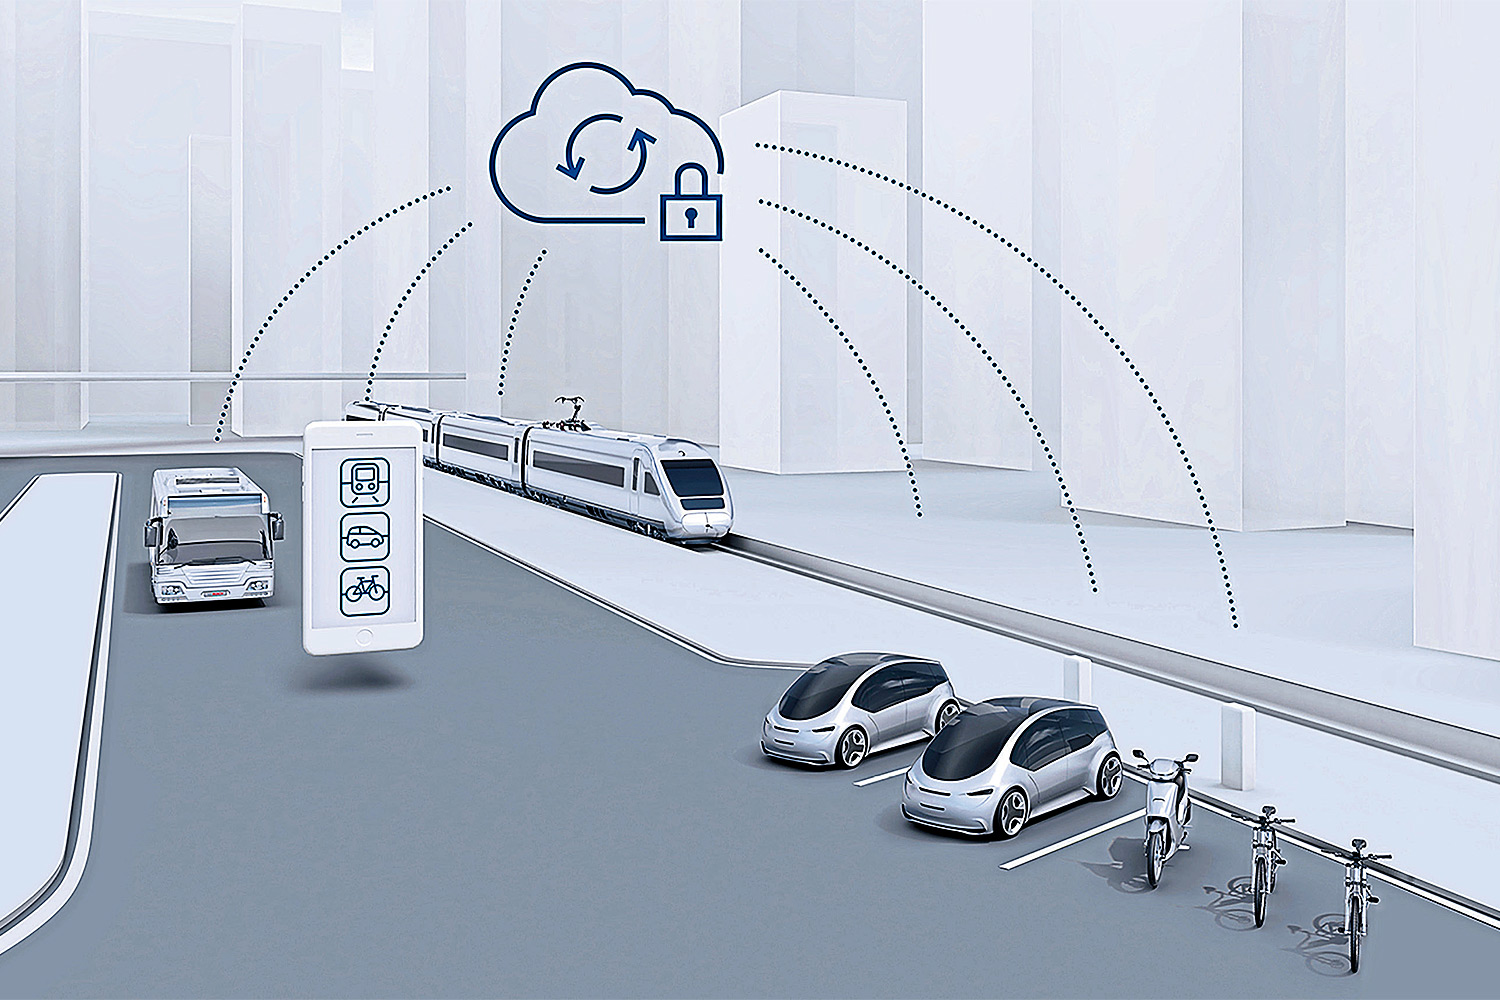 Connected mobility hardware and software, which could lead to products such as an IoT-enabled mobile office, will be a major focus of Bosch in Southeast Asia.